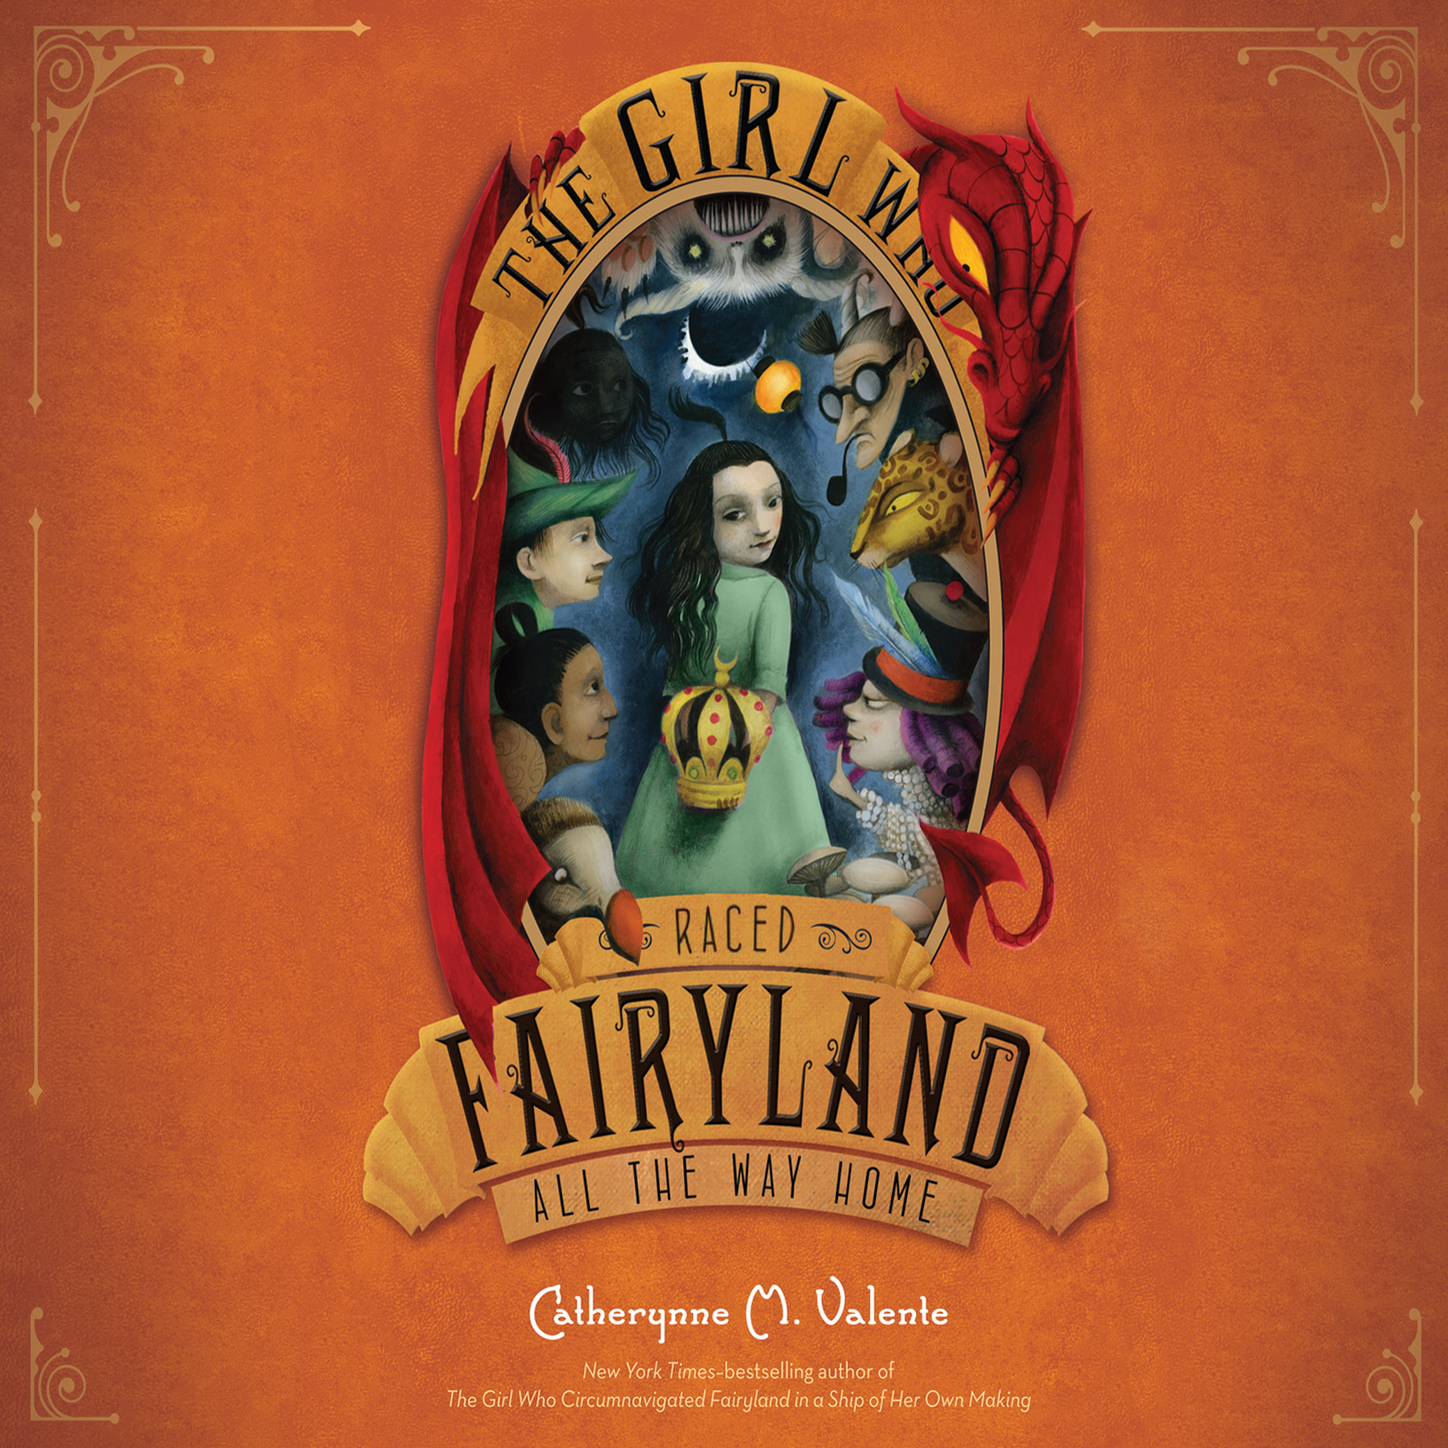 Catherynne M. Valente The Girl Who Raced Fairyland All the Way Home - Fairyland 5 (Unabridged) m w roman down the witches way